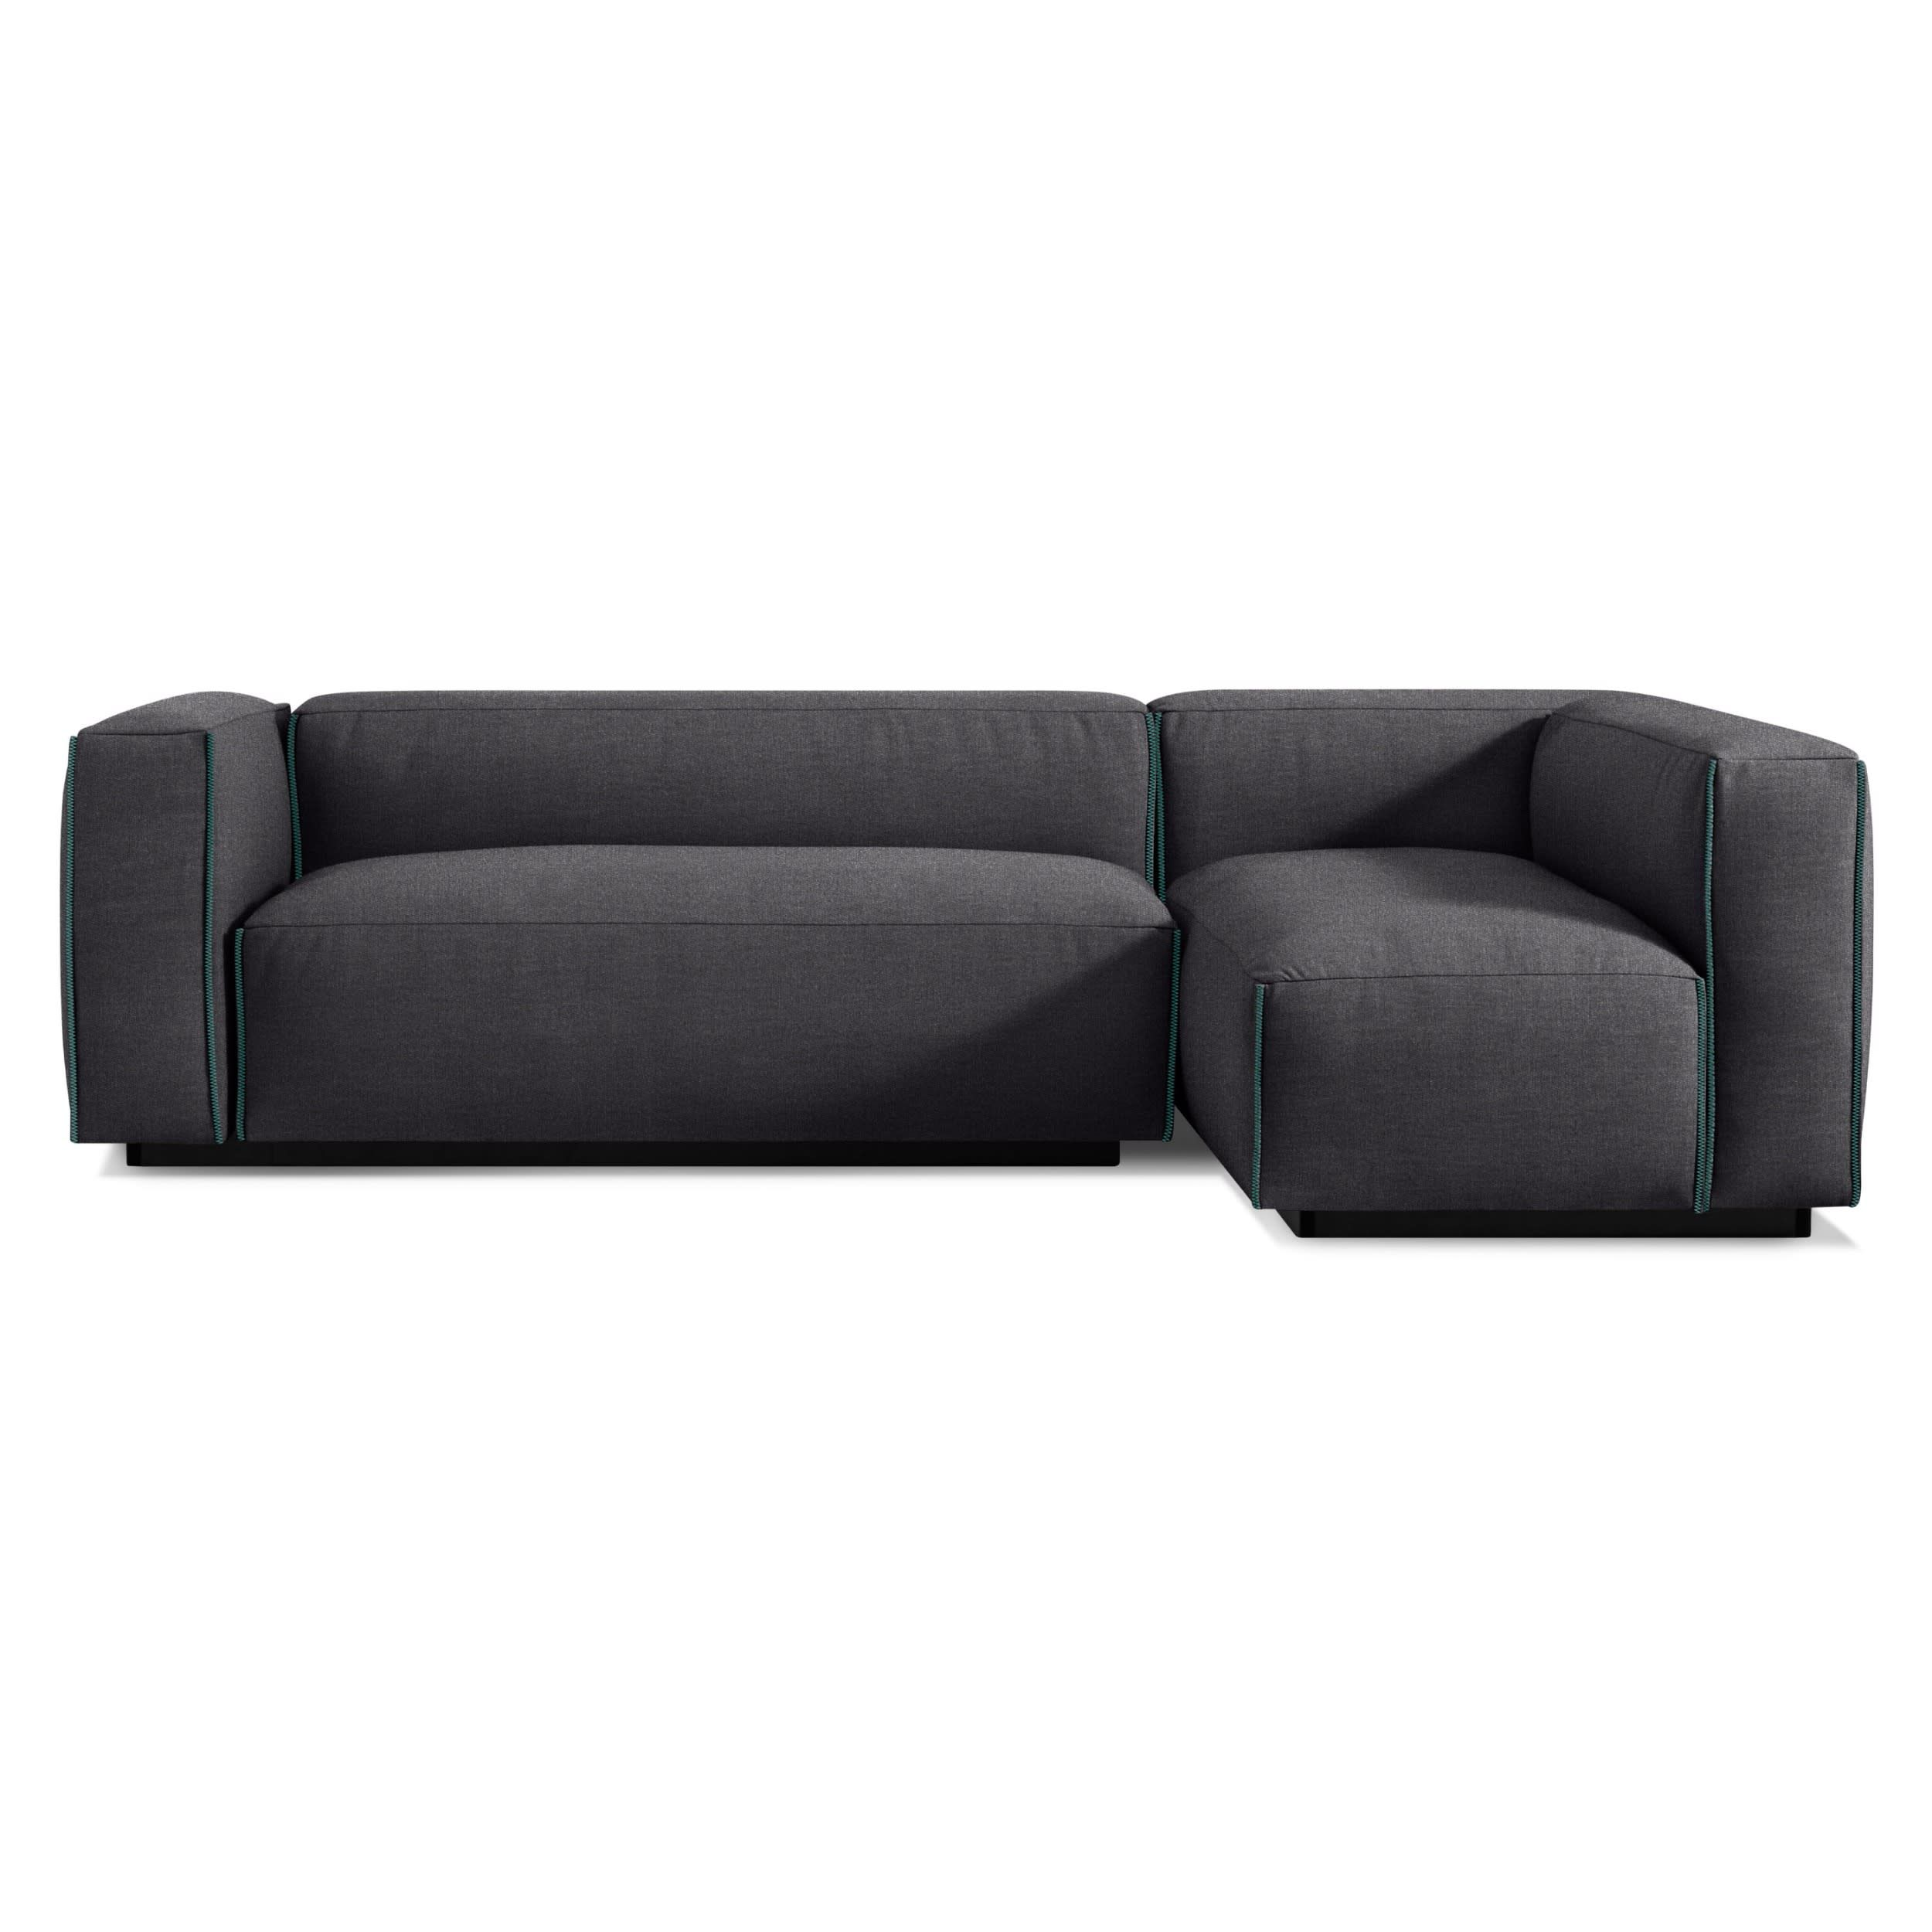 Cleon Small Sectional Sofa Small Sectional Sofa Modern